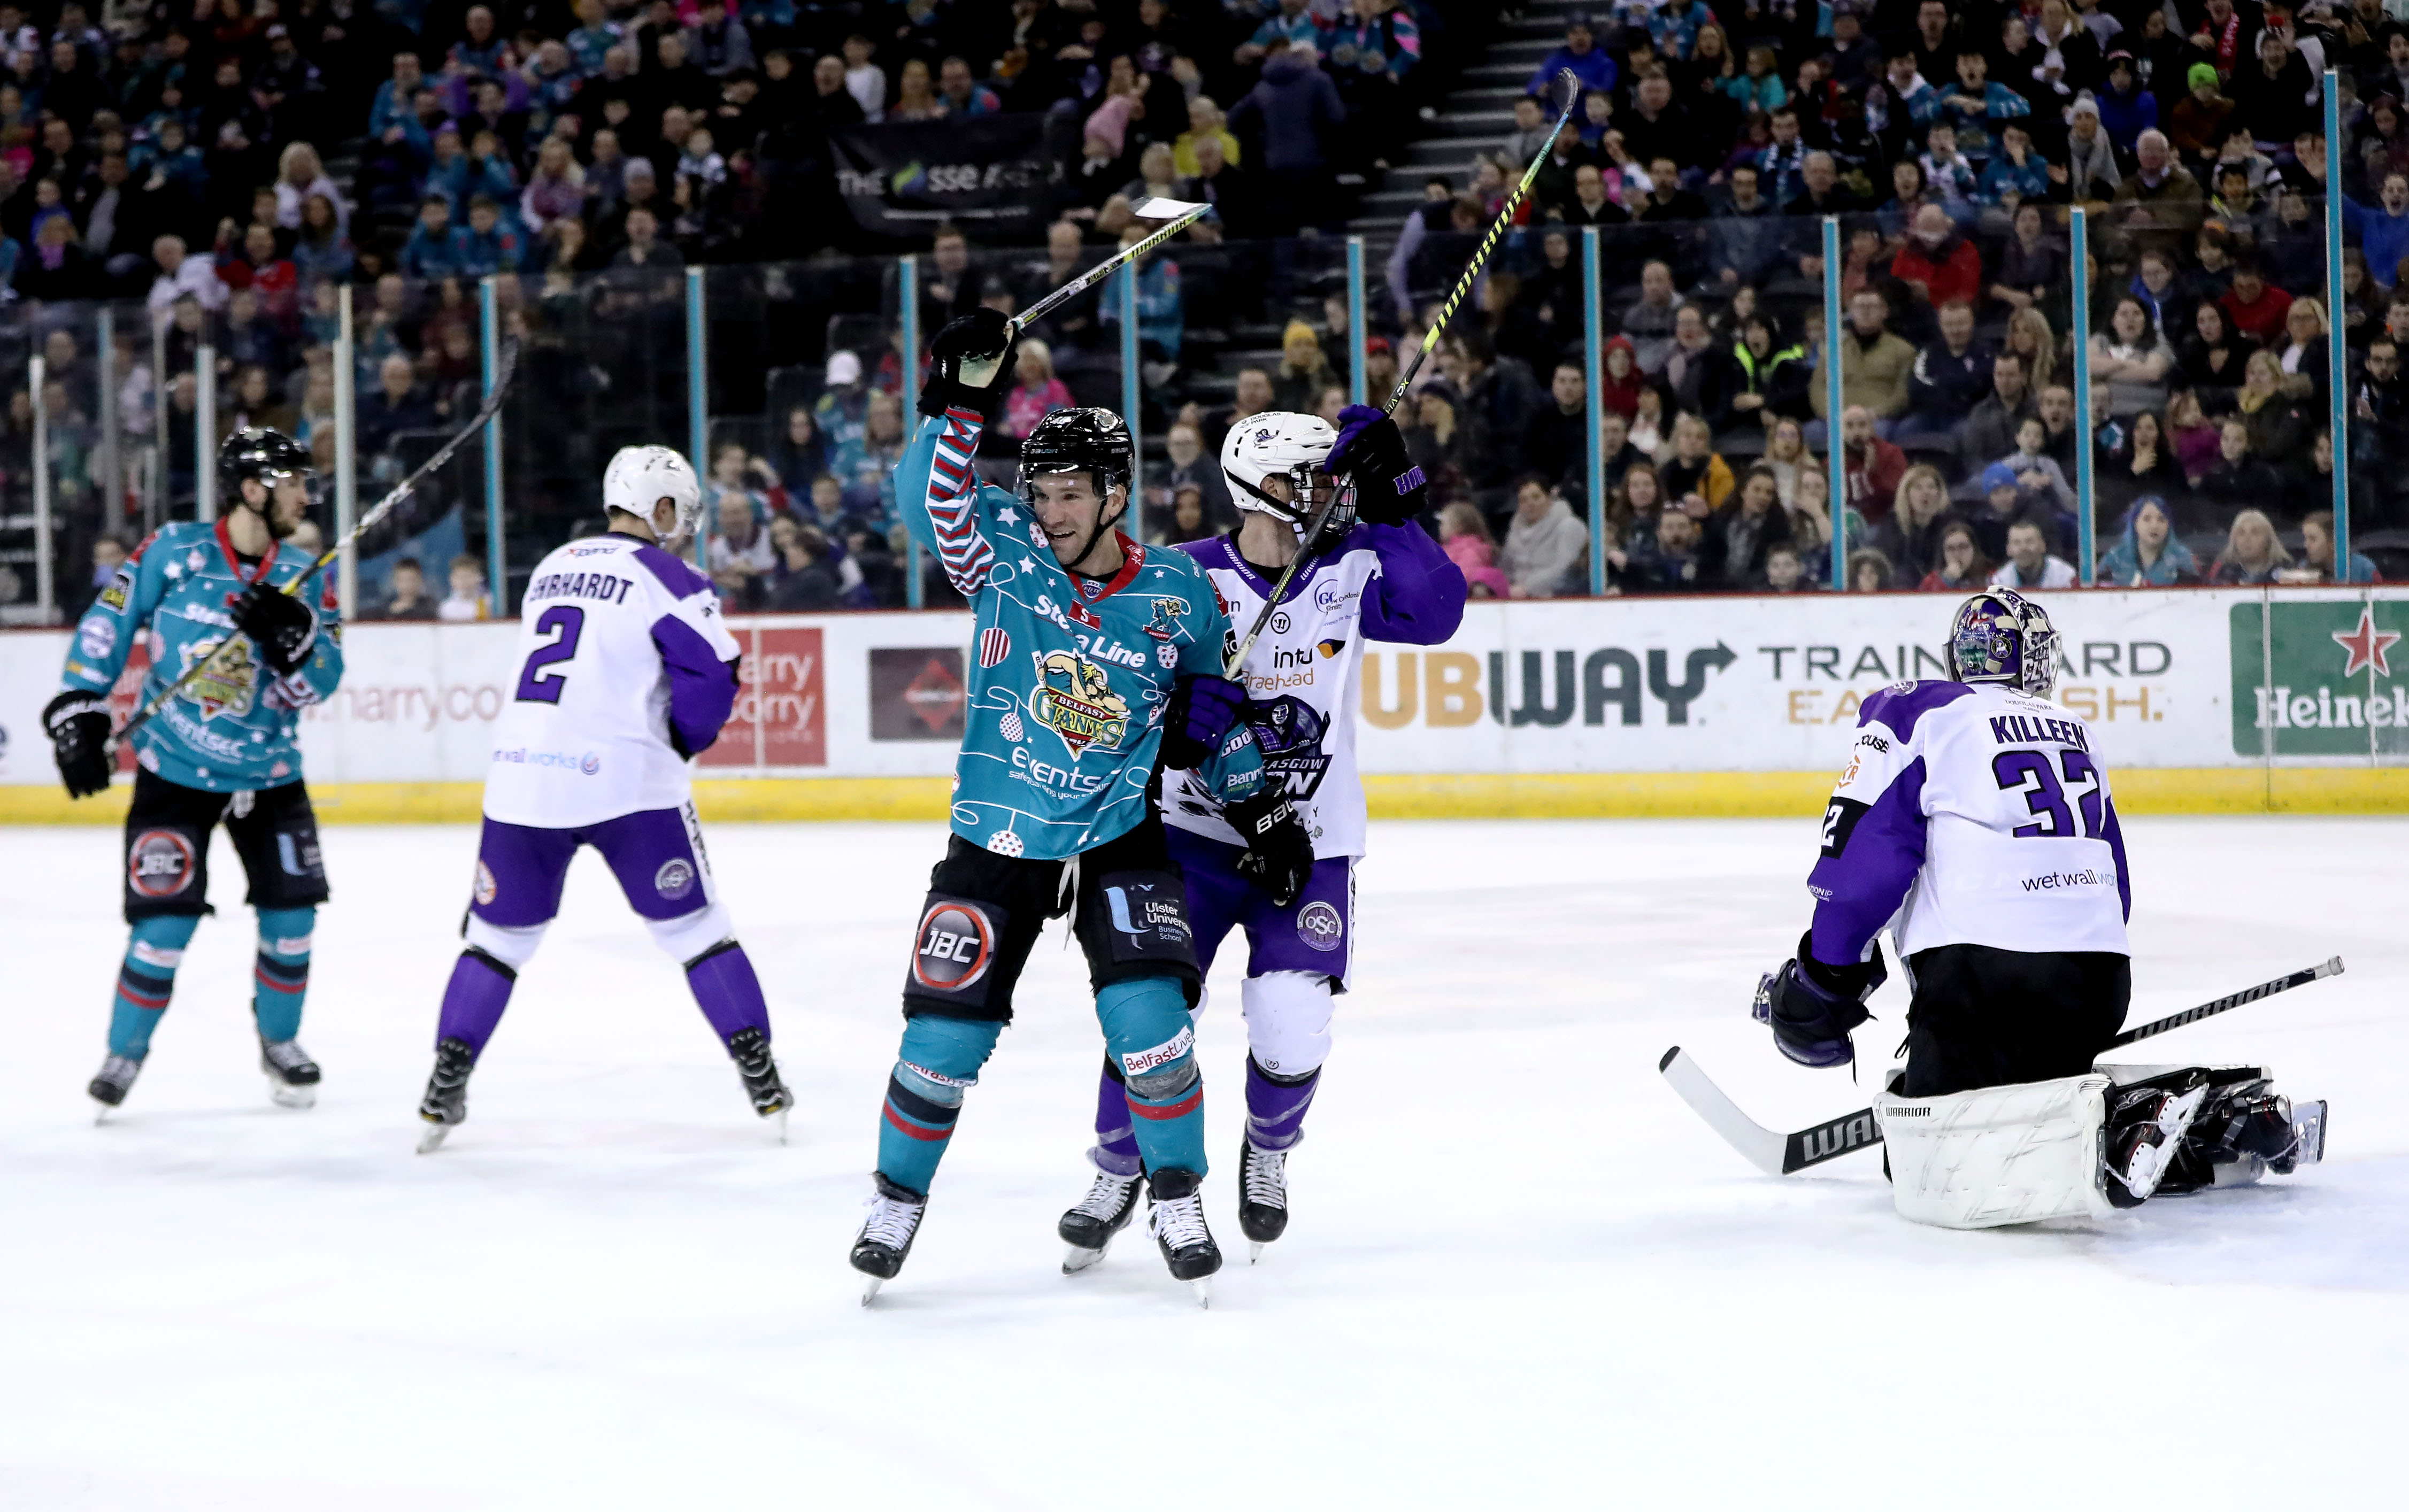 Belfast Giants v Glasgow Clan - EIHL